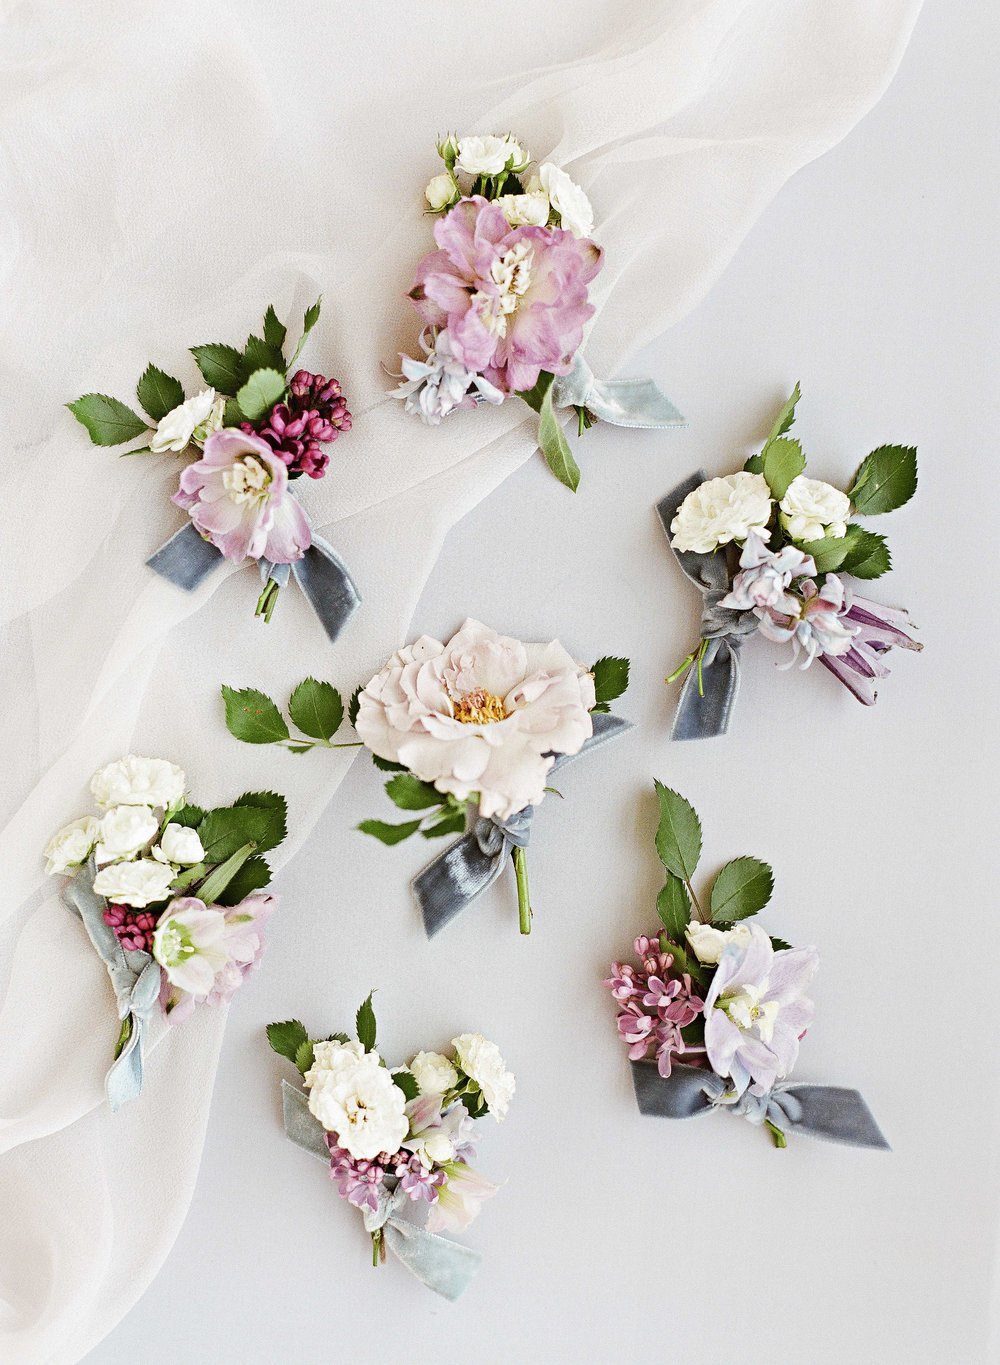 rebecca-clay-wedding-north-carolina-boutonnieres-103228791.jpg